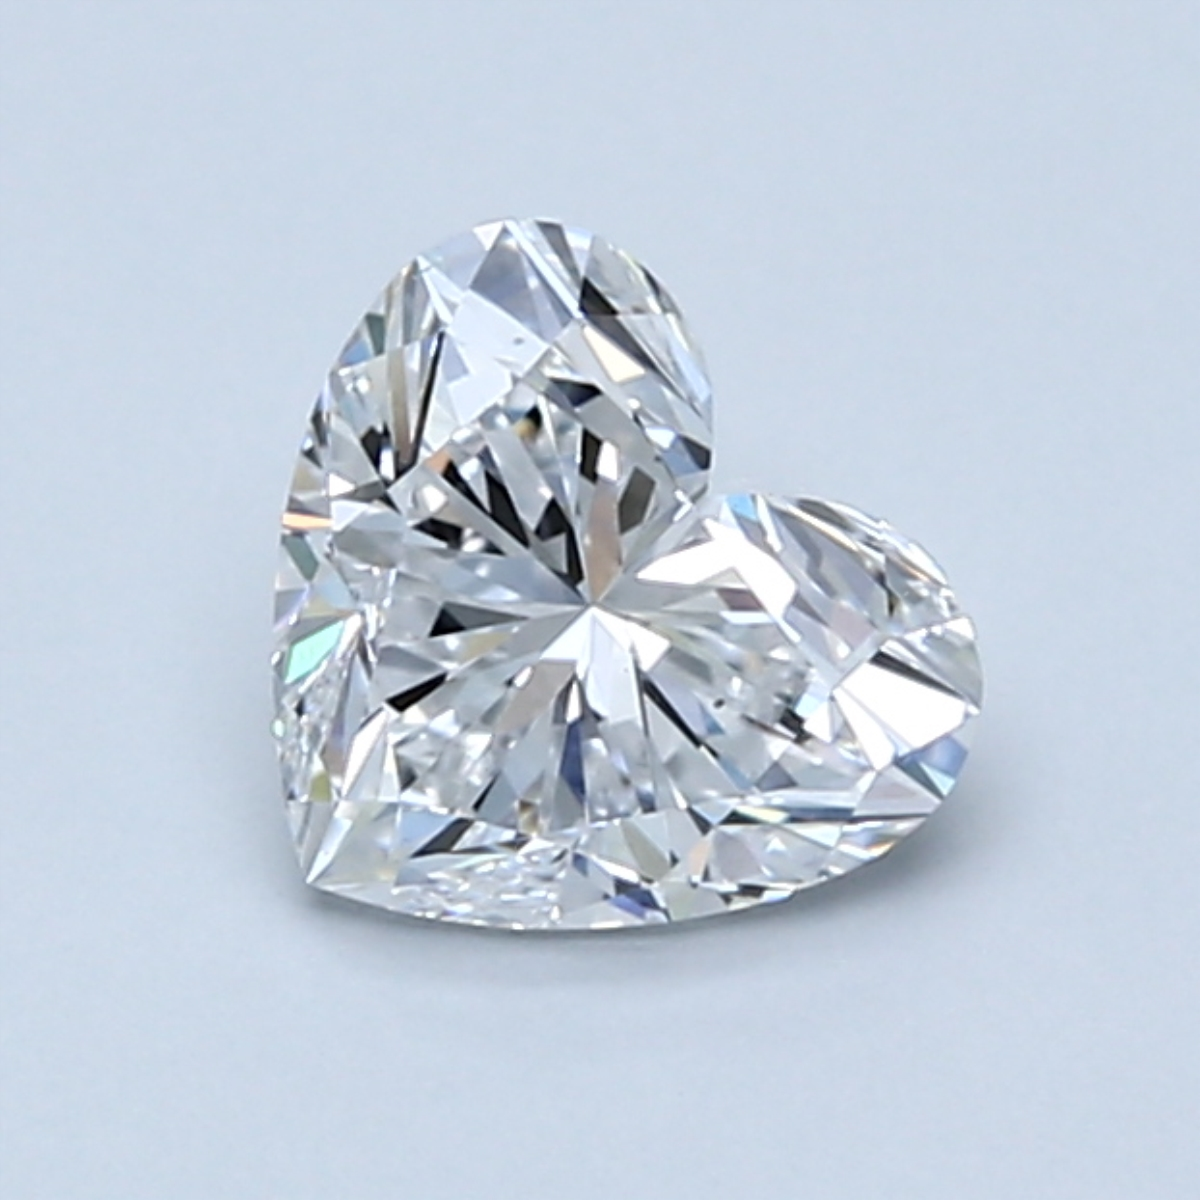 1.00-Carat Heart Shaped Diamond by Blue Nile